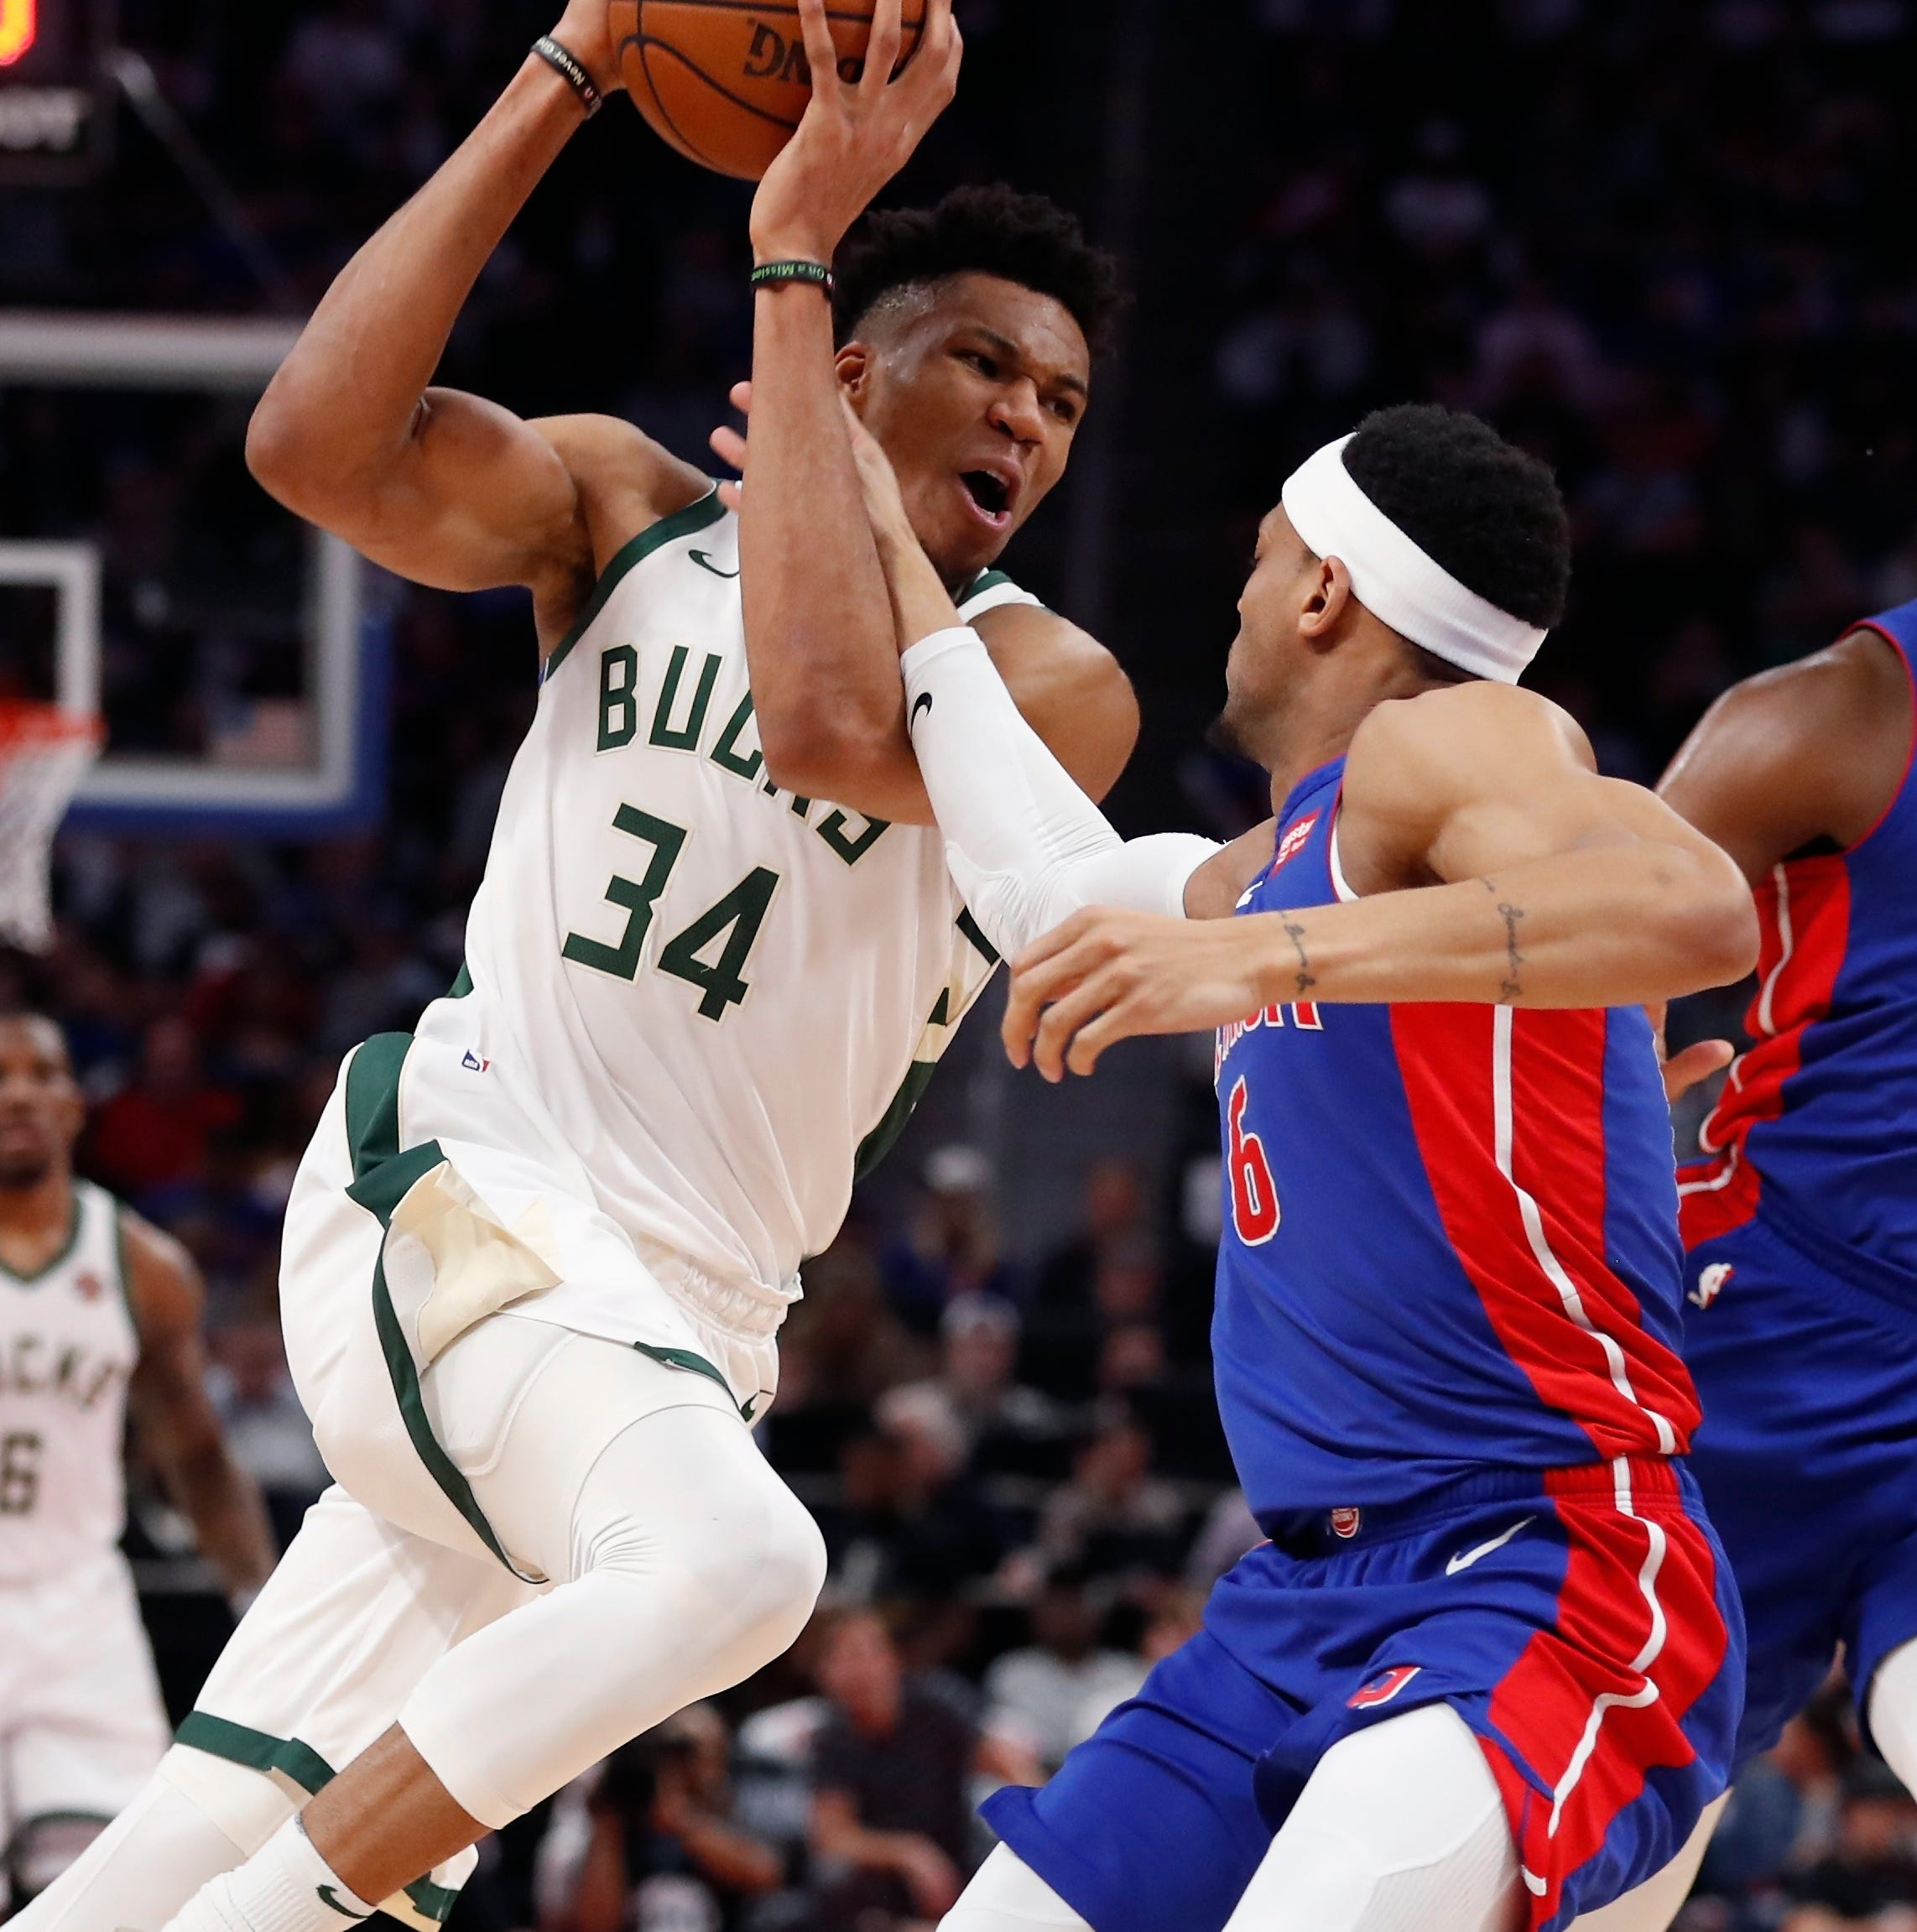 Bucks 127, Pistons 104: A long drought ends with a first-round sweep